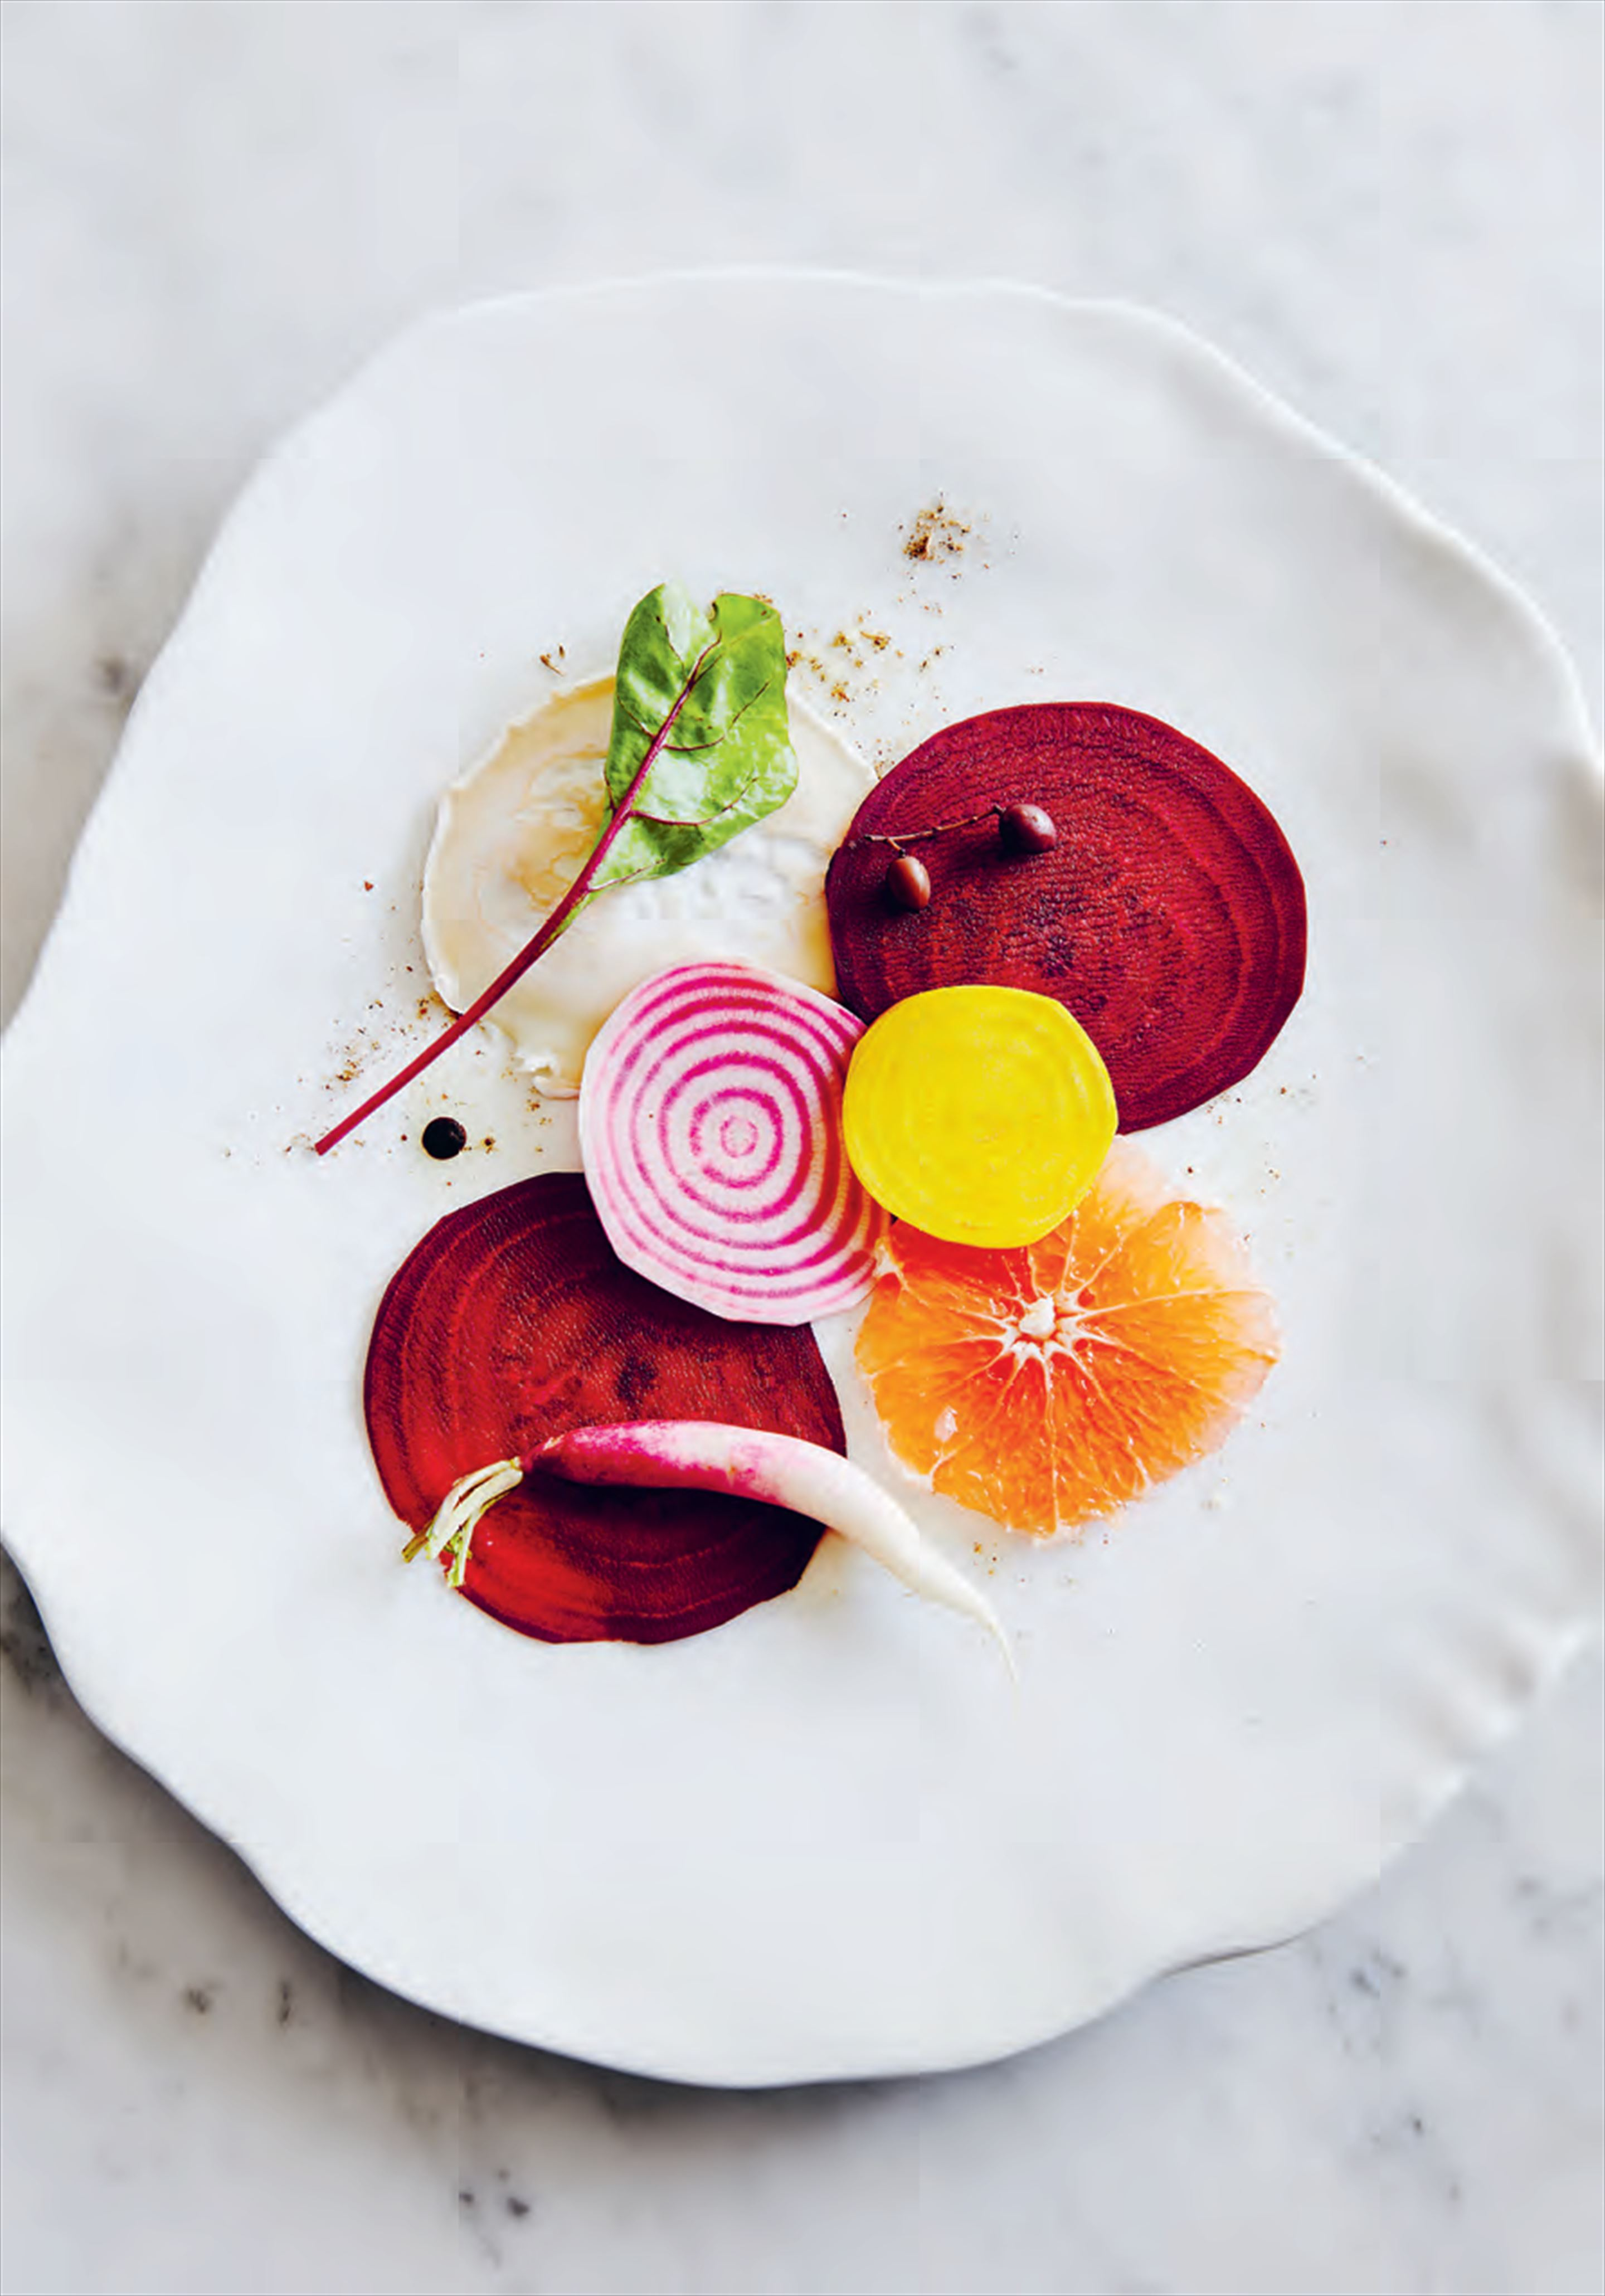 Beetroot, pink grapefruit & goat's cheese carpaccio